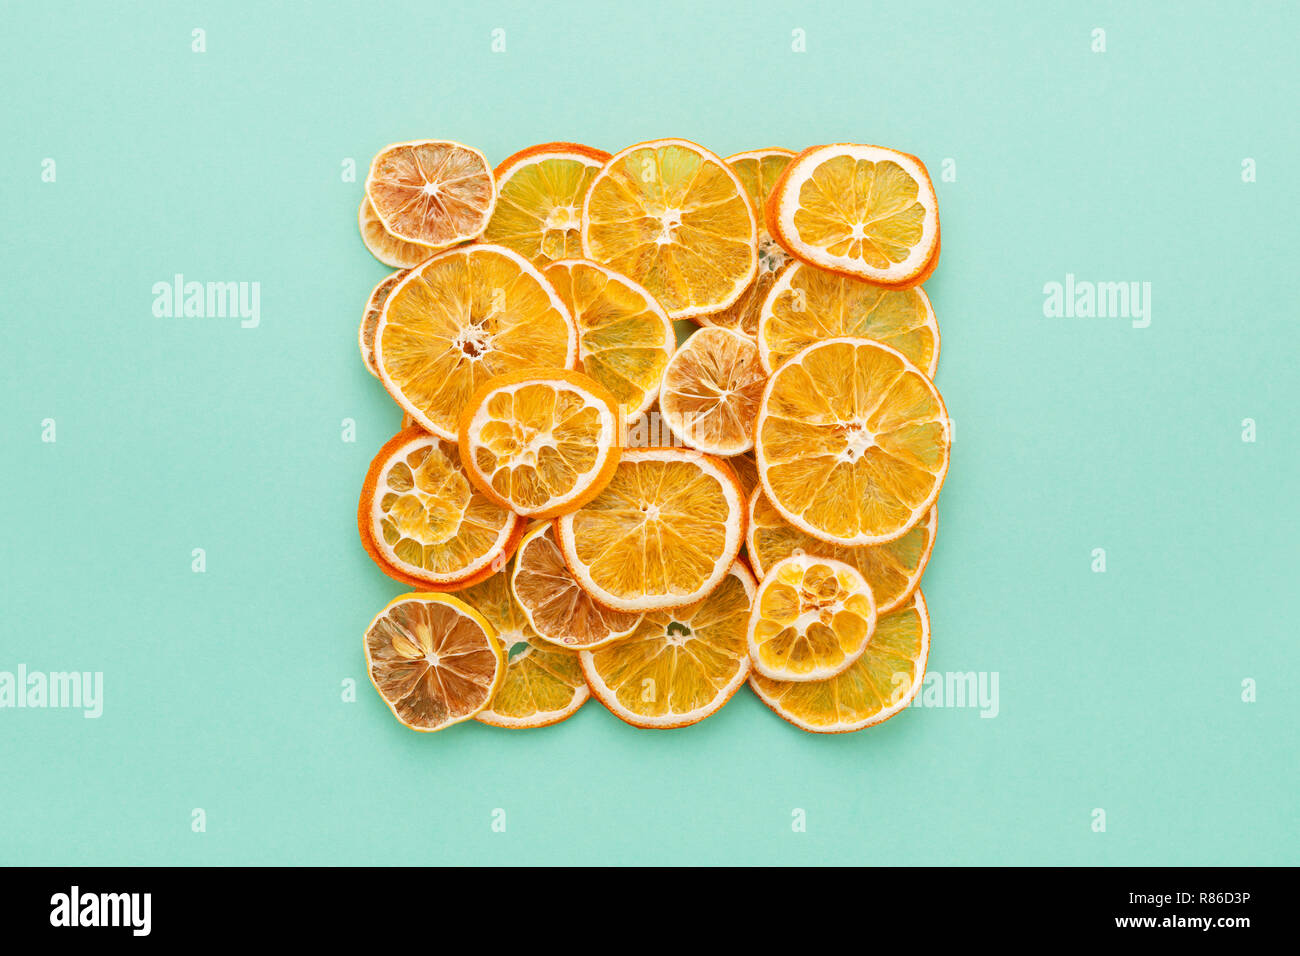 Dried Citrus Slices Lemons Oranges On Turquoise Colored Background